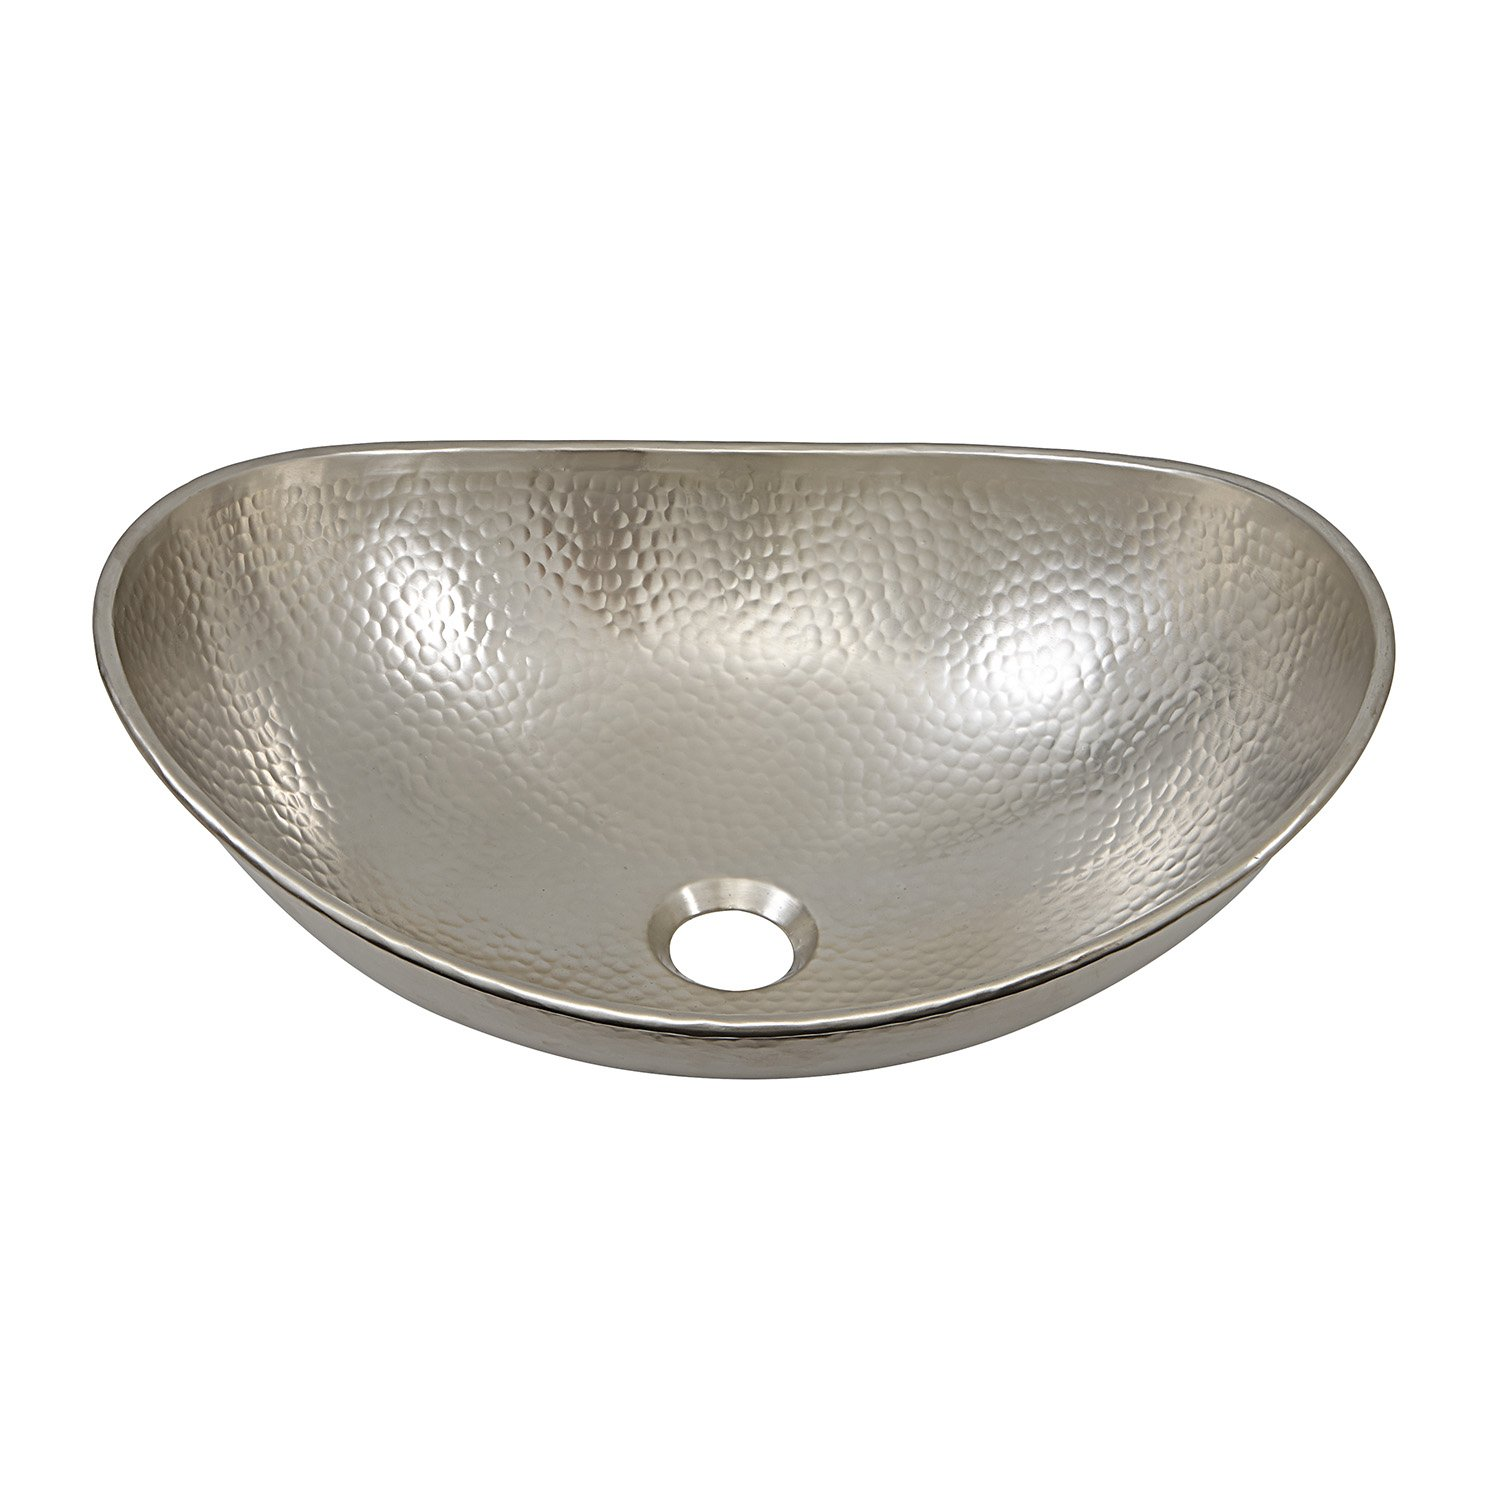 Charmant Sinkology SB305 19N Hobbes 19 Inch Above Counter Vessel Sink Handcrafted In  Hammered Nickel     Amazon.com